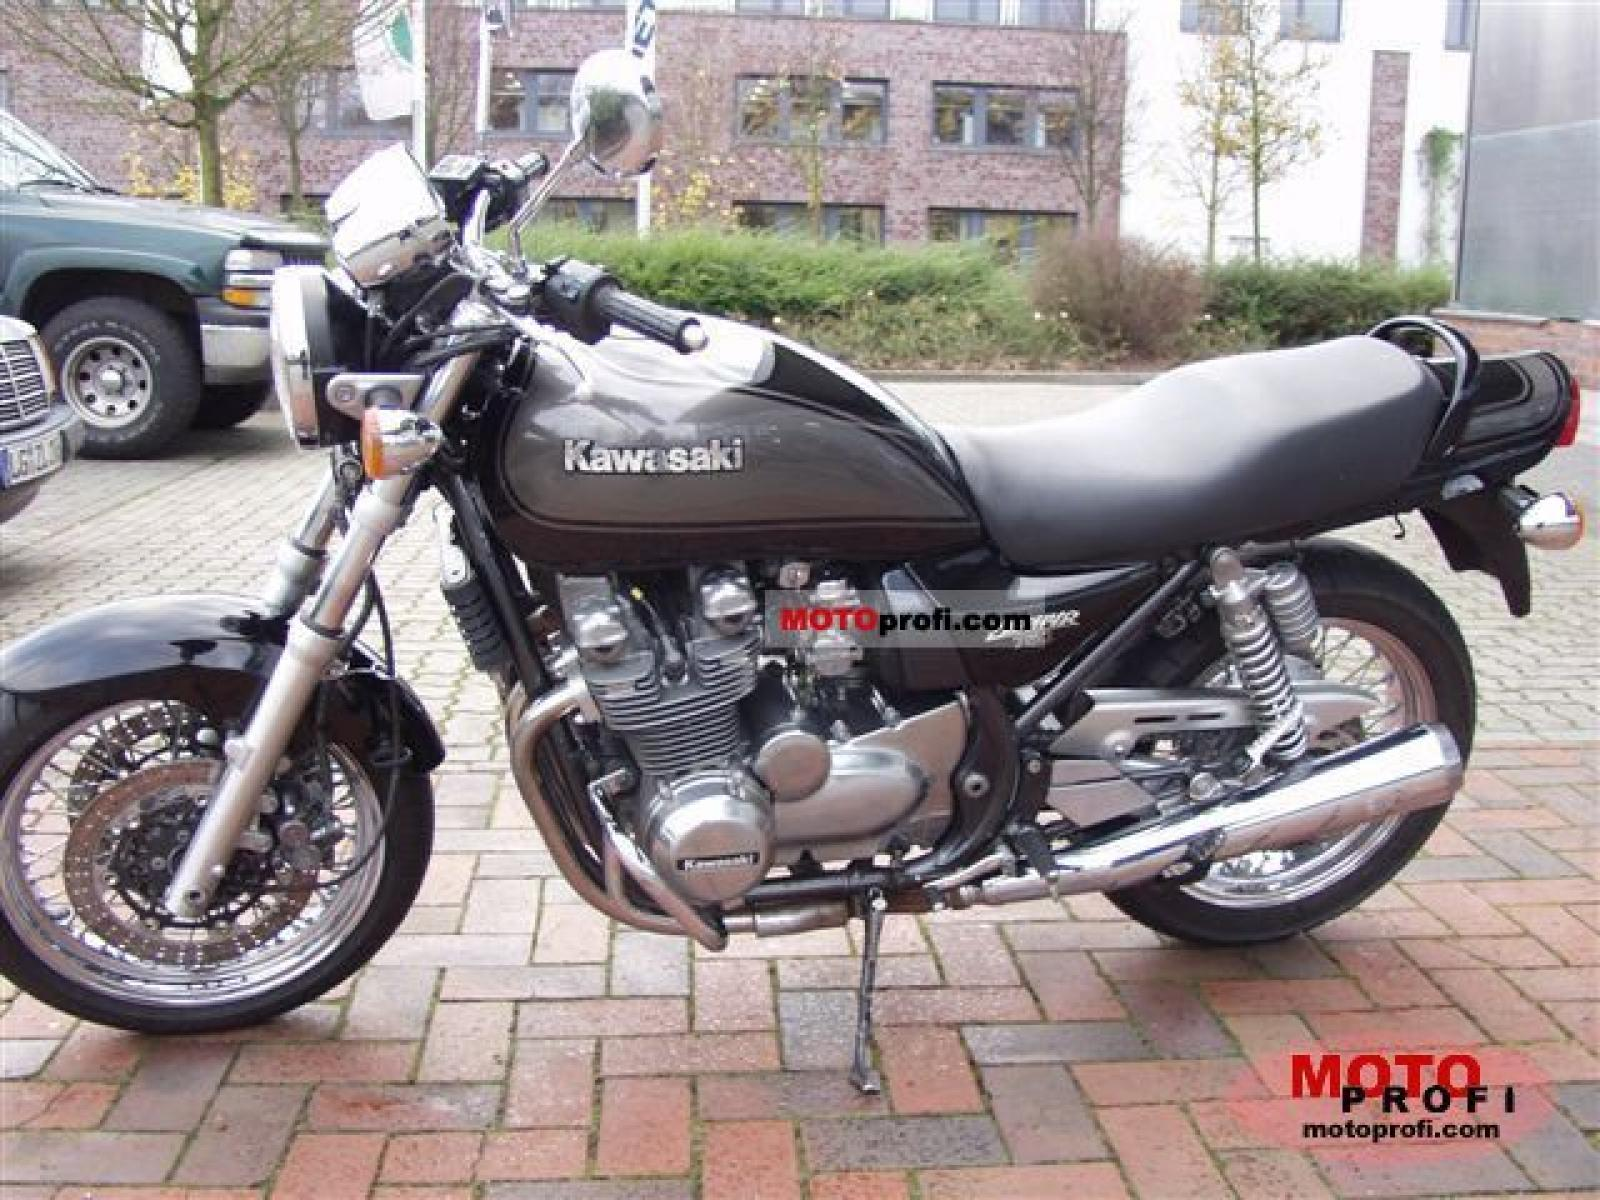 Kawasaki Zephyr 750 Rs Pics Specs And List Of Seriess By